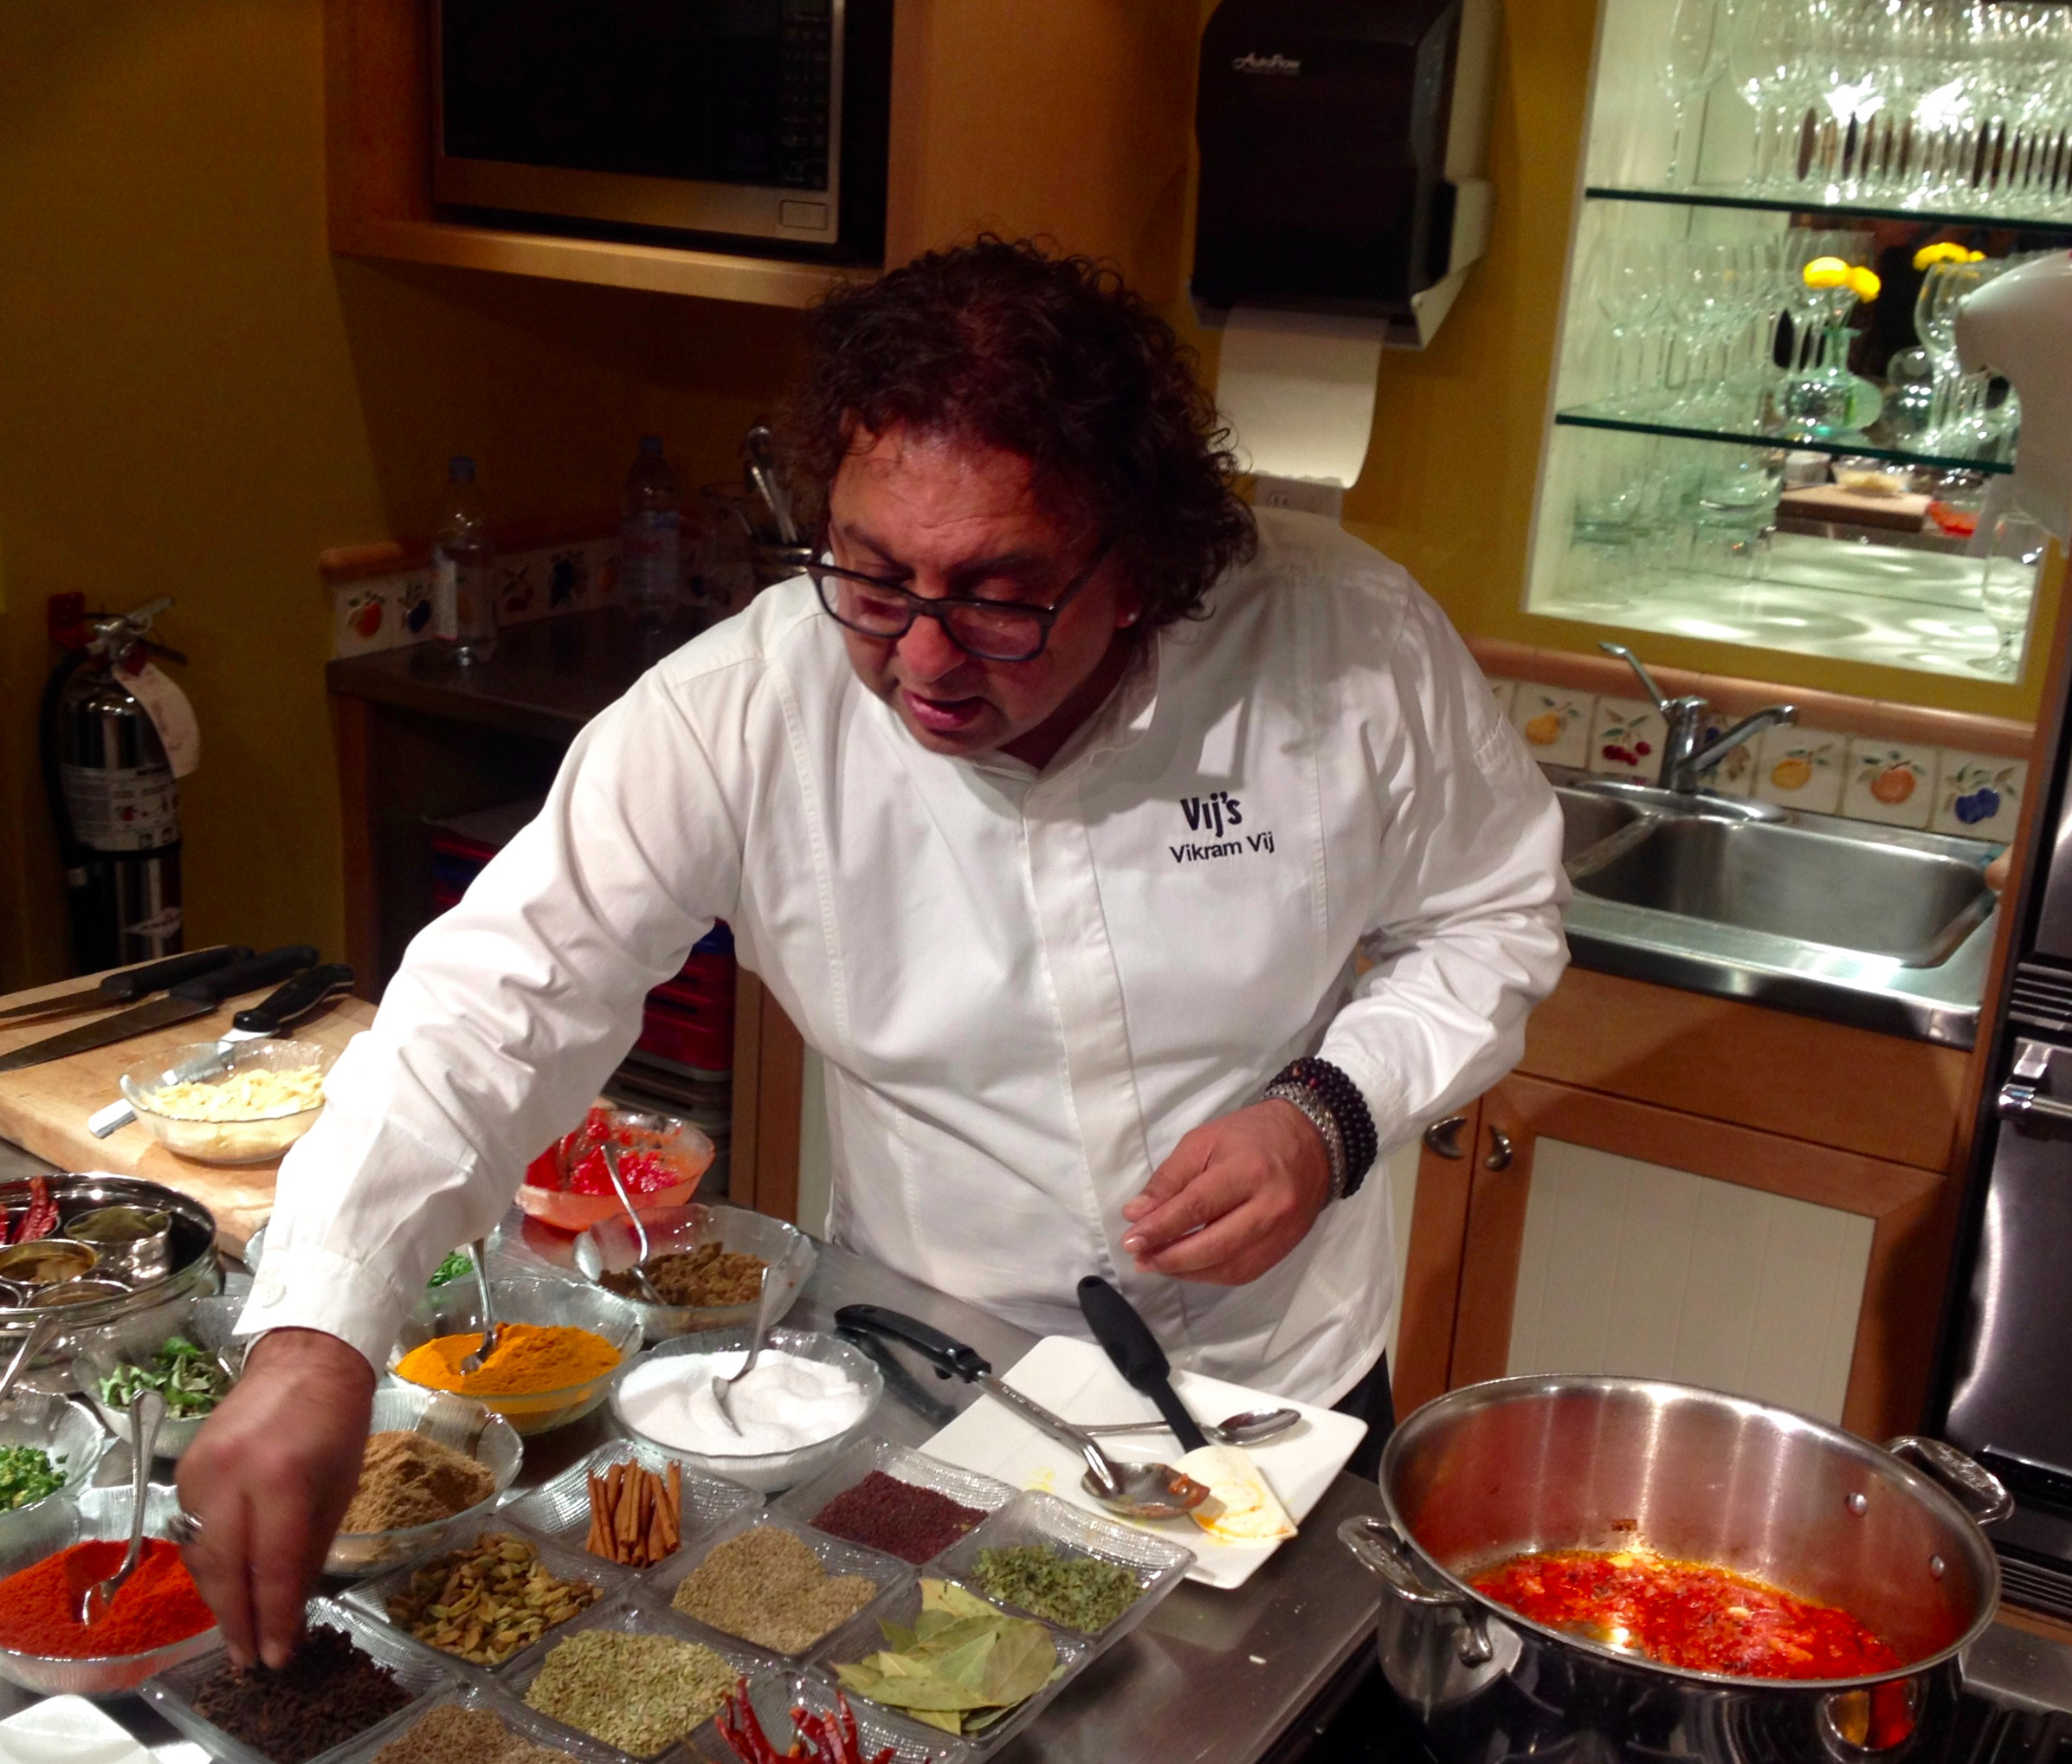 Cooking class with Vikram Vij